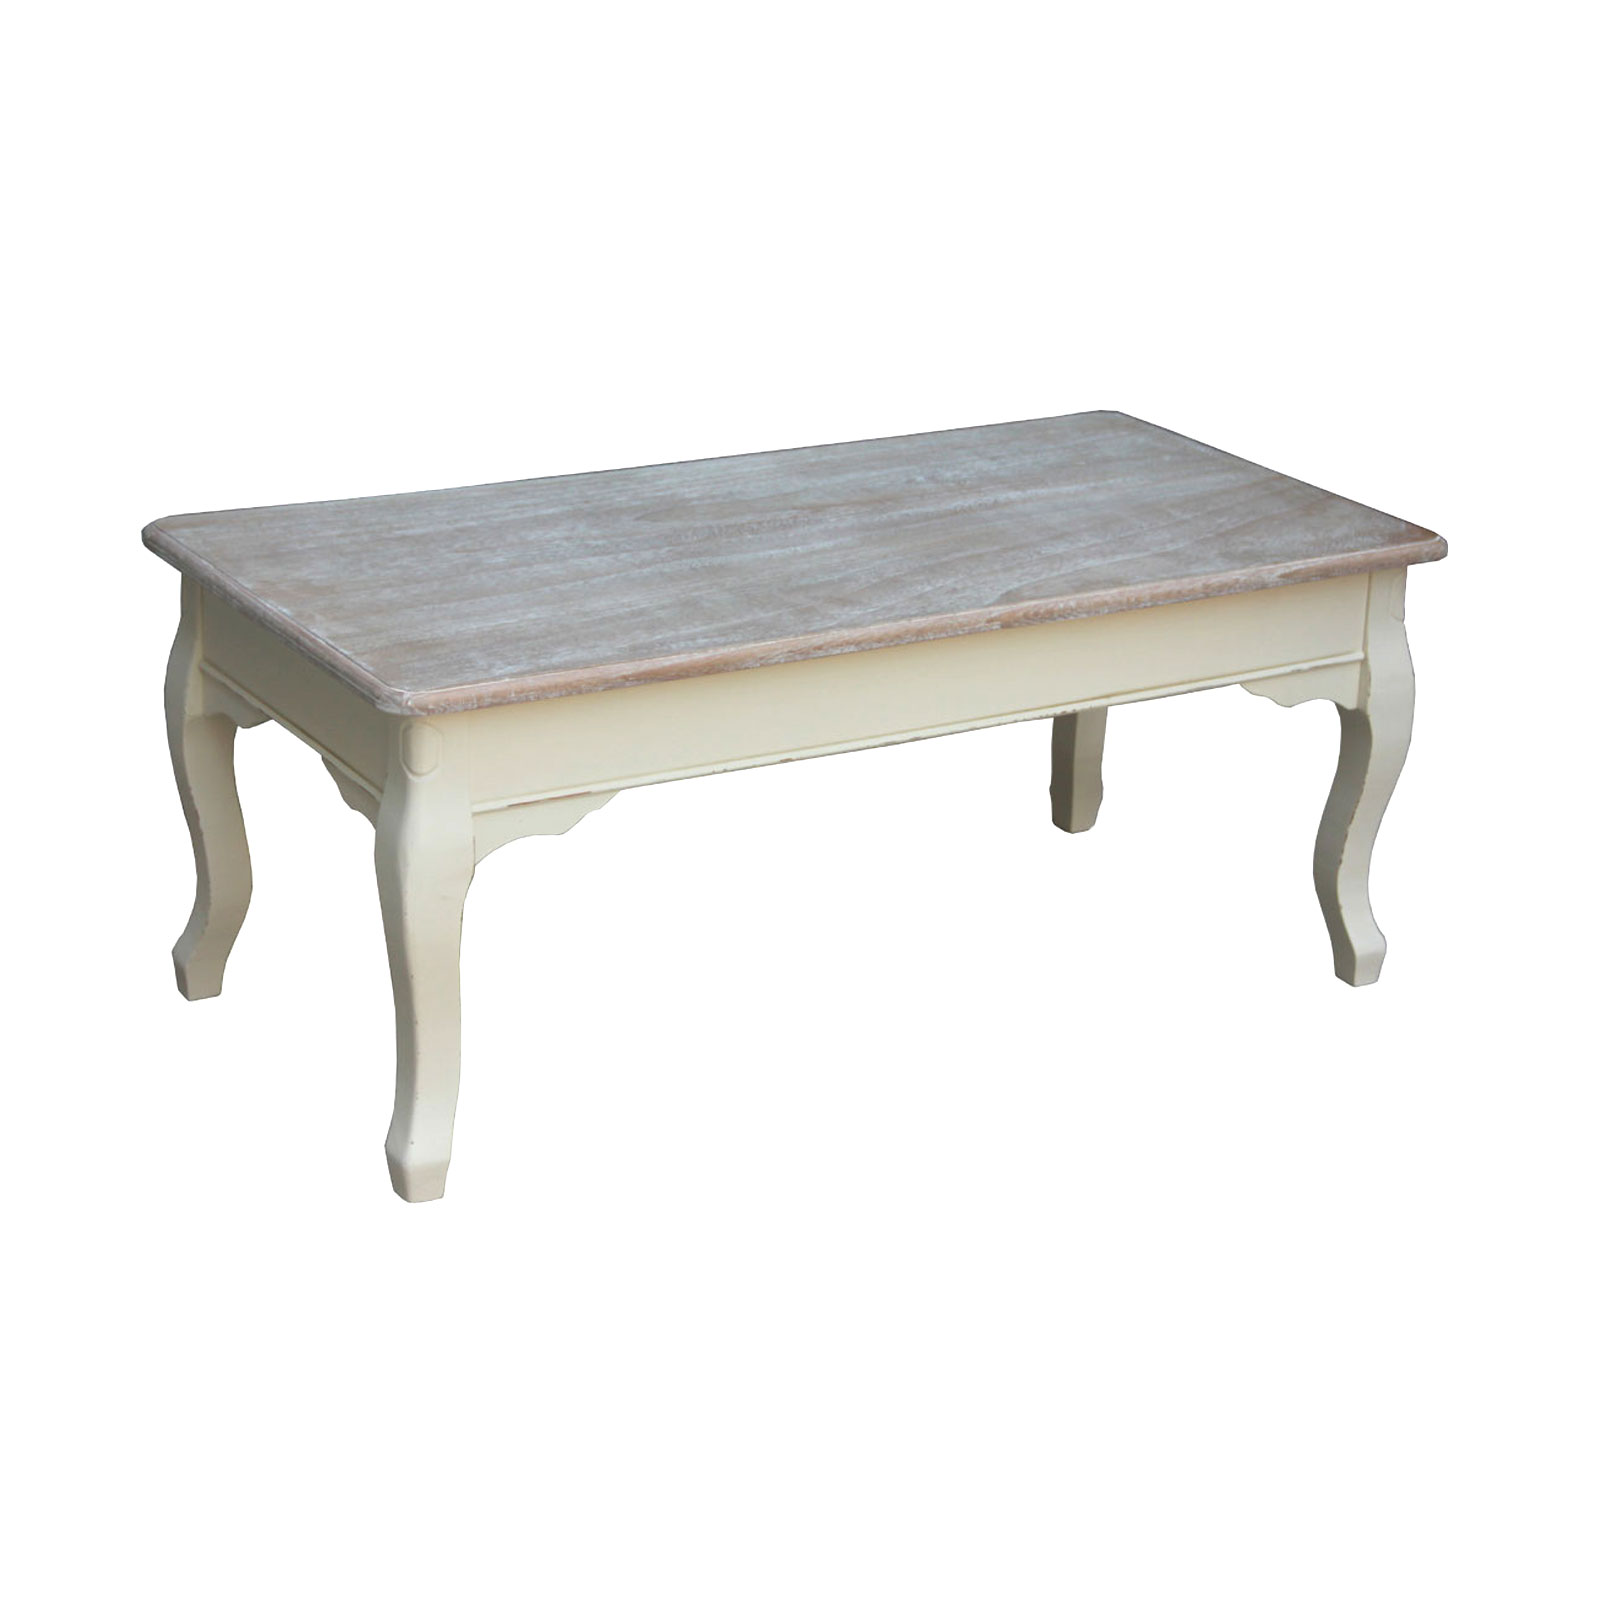 Charles bentley cream maison vintage coffee table wooden for Antique cream coffee table